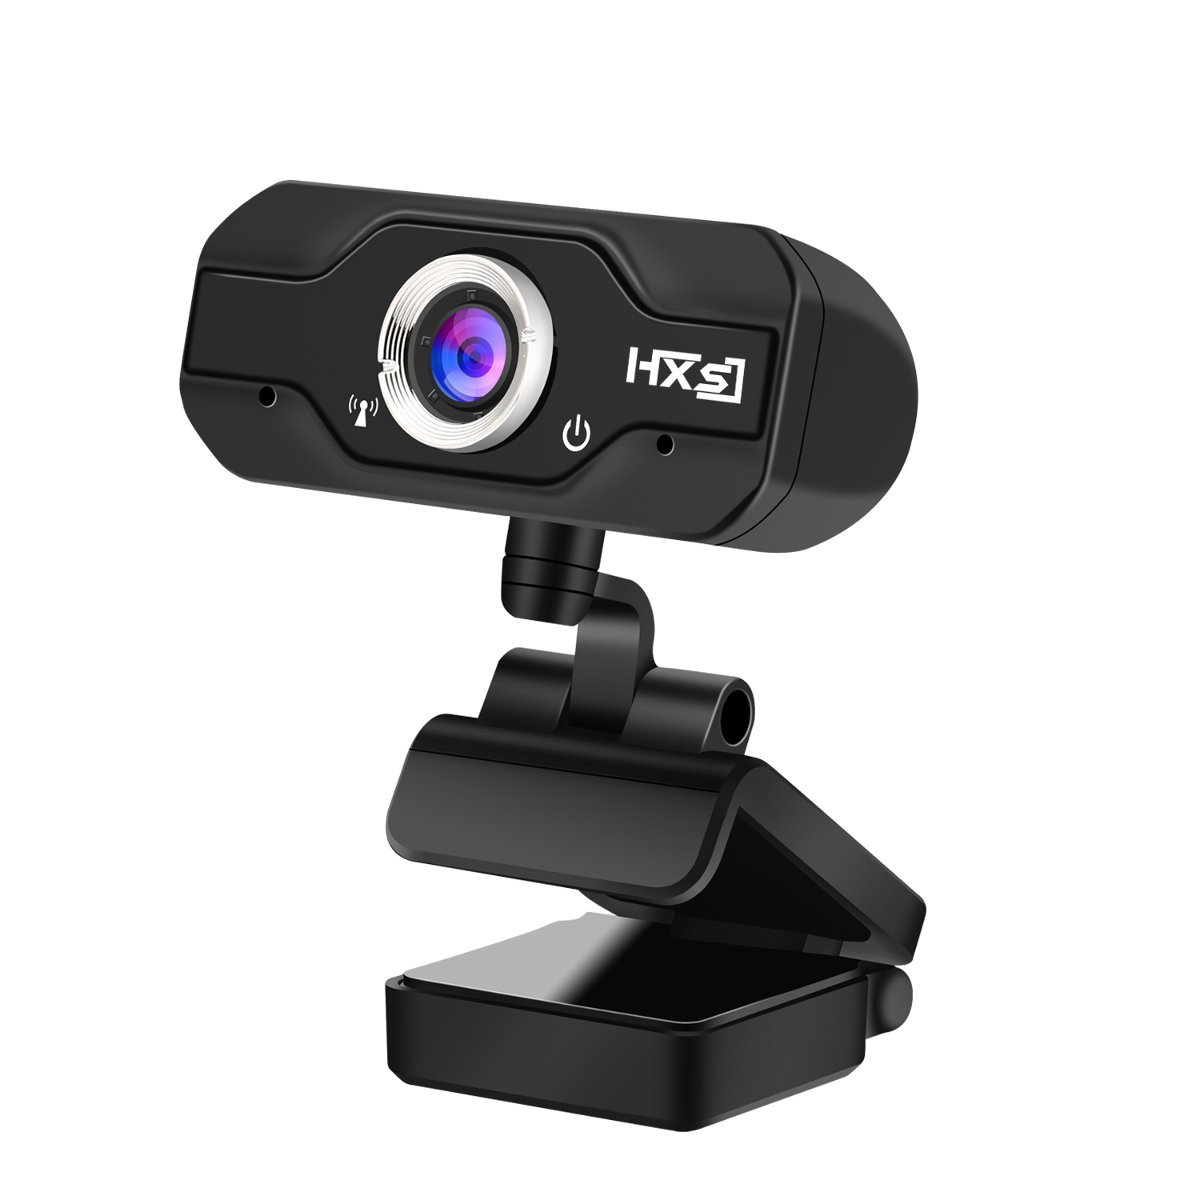 720P HD Webcam, InTeching USB Widescreen Computer Camera with Microphone for Windows XP/Vista/7/8/8.1/10 PC, Desktop or Laptop (Livestream/Skype Cam)